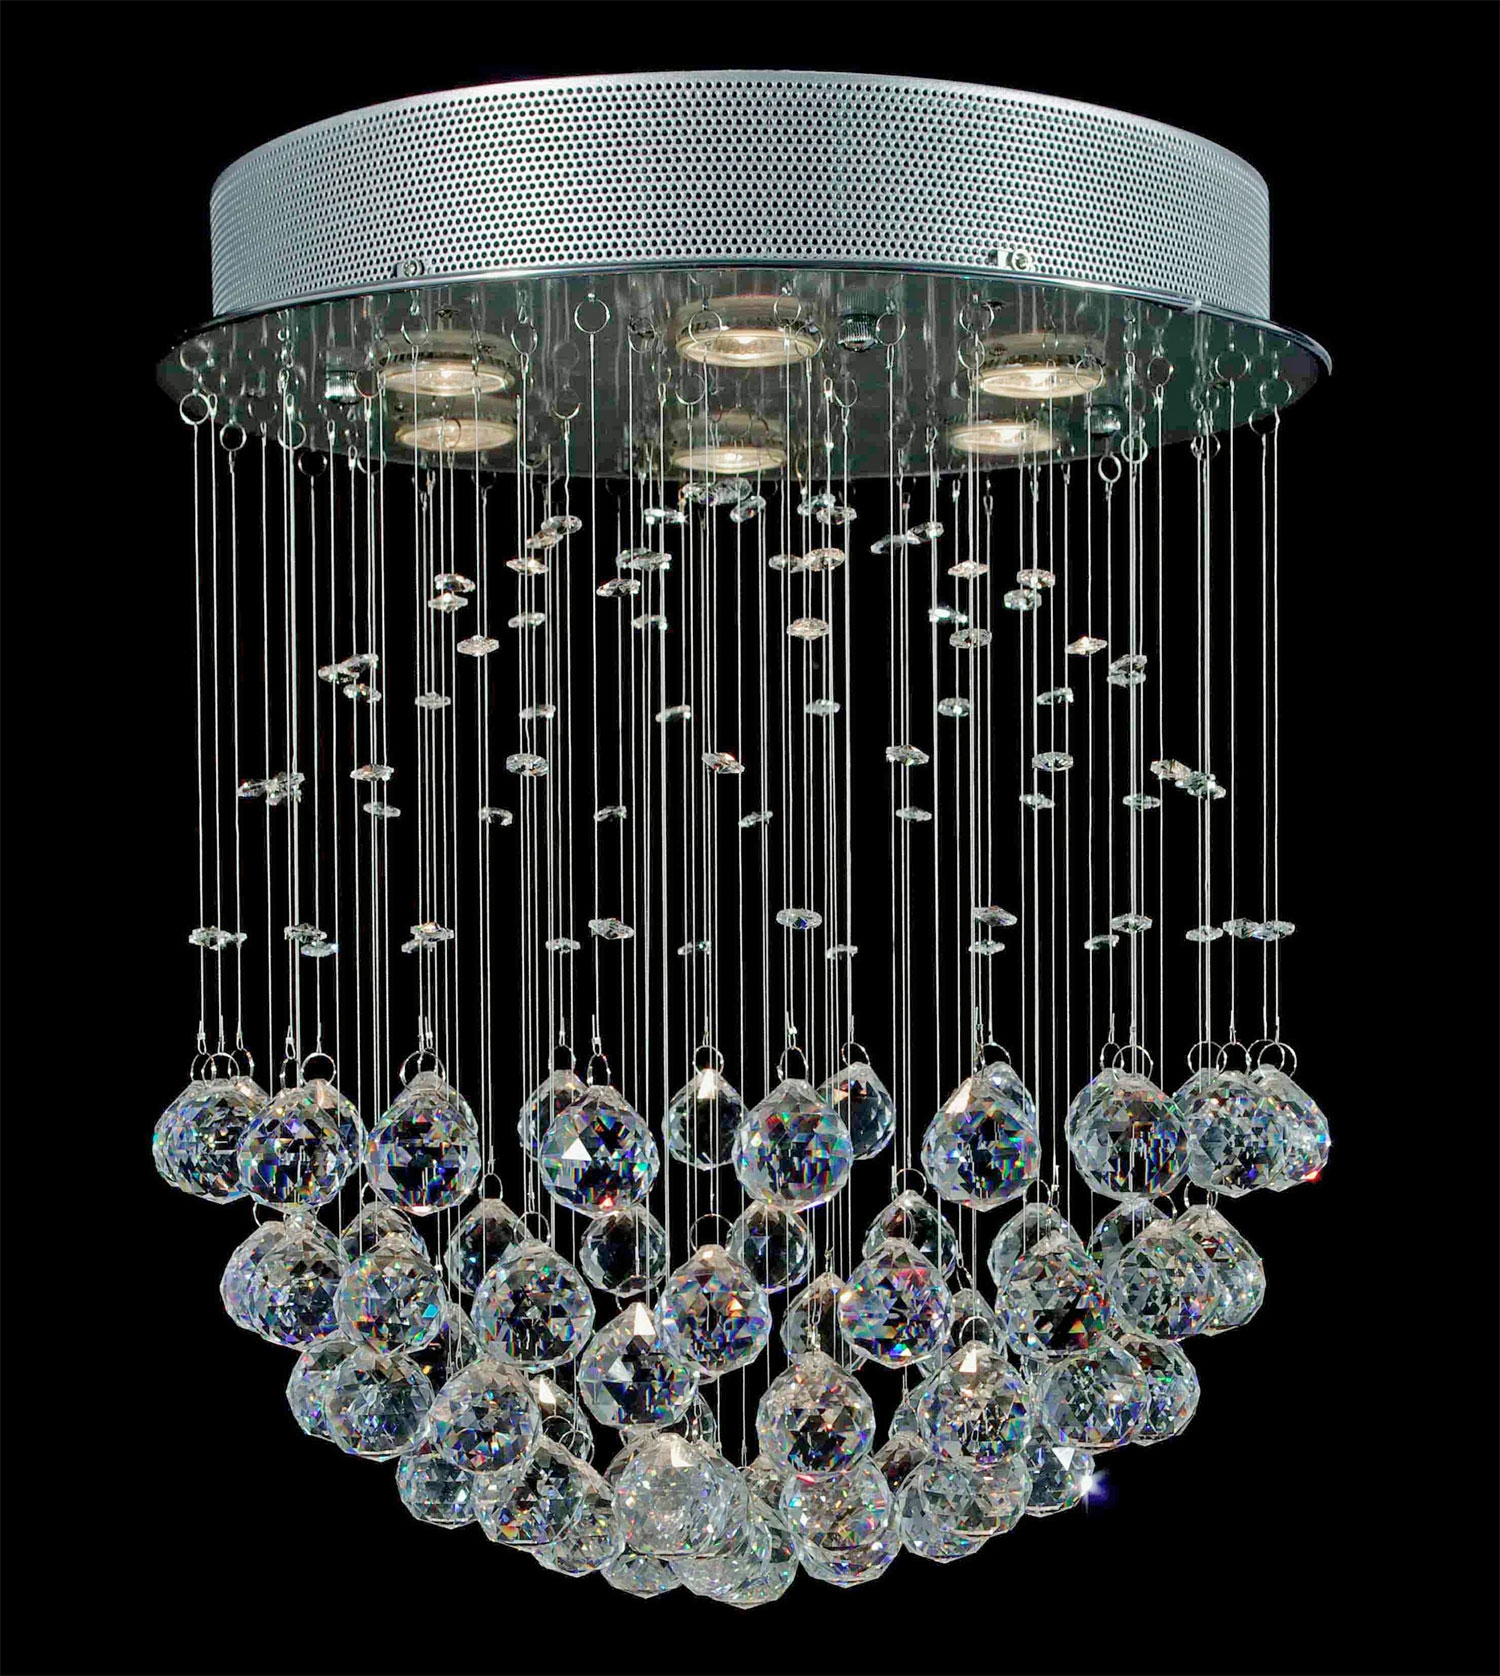 Chandelier Inspiring Chandelier Contemporary Modern Chandeliers Intended For Contemporary Chandeliers (#5 of 12)